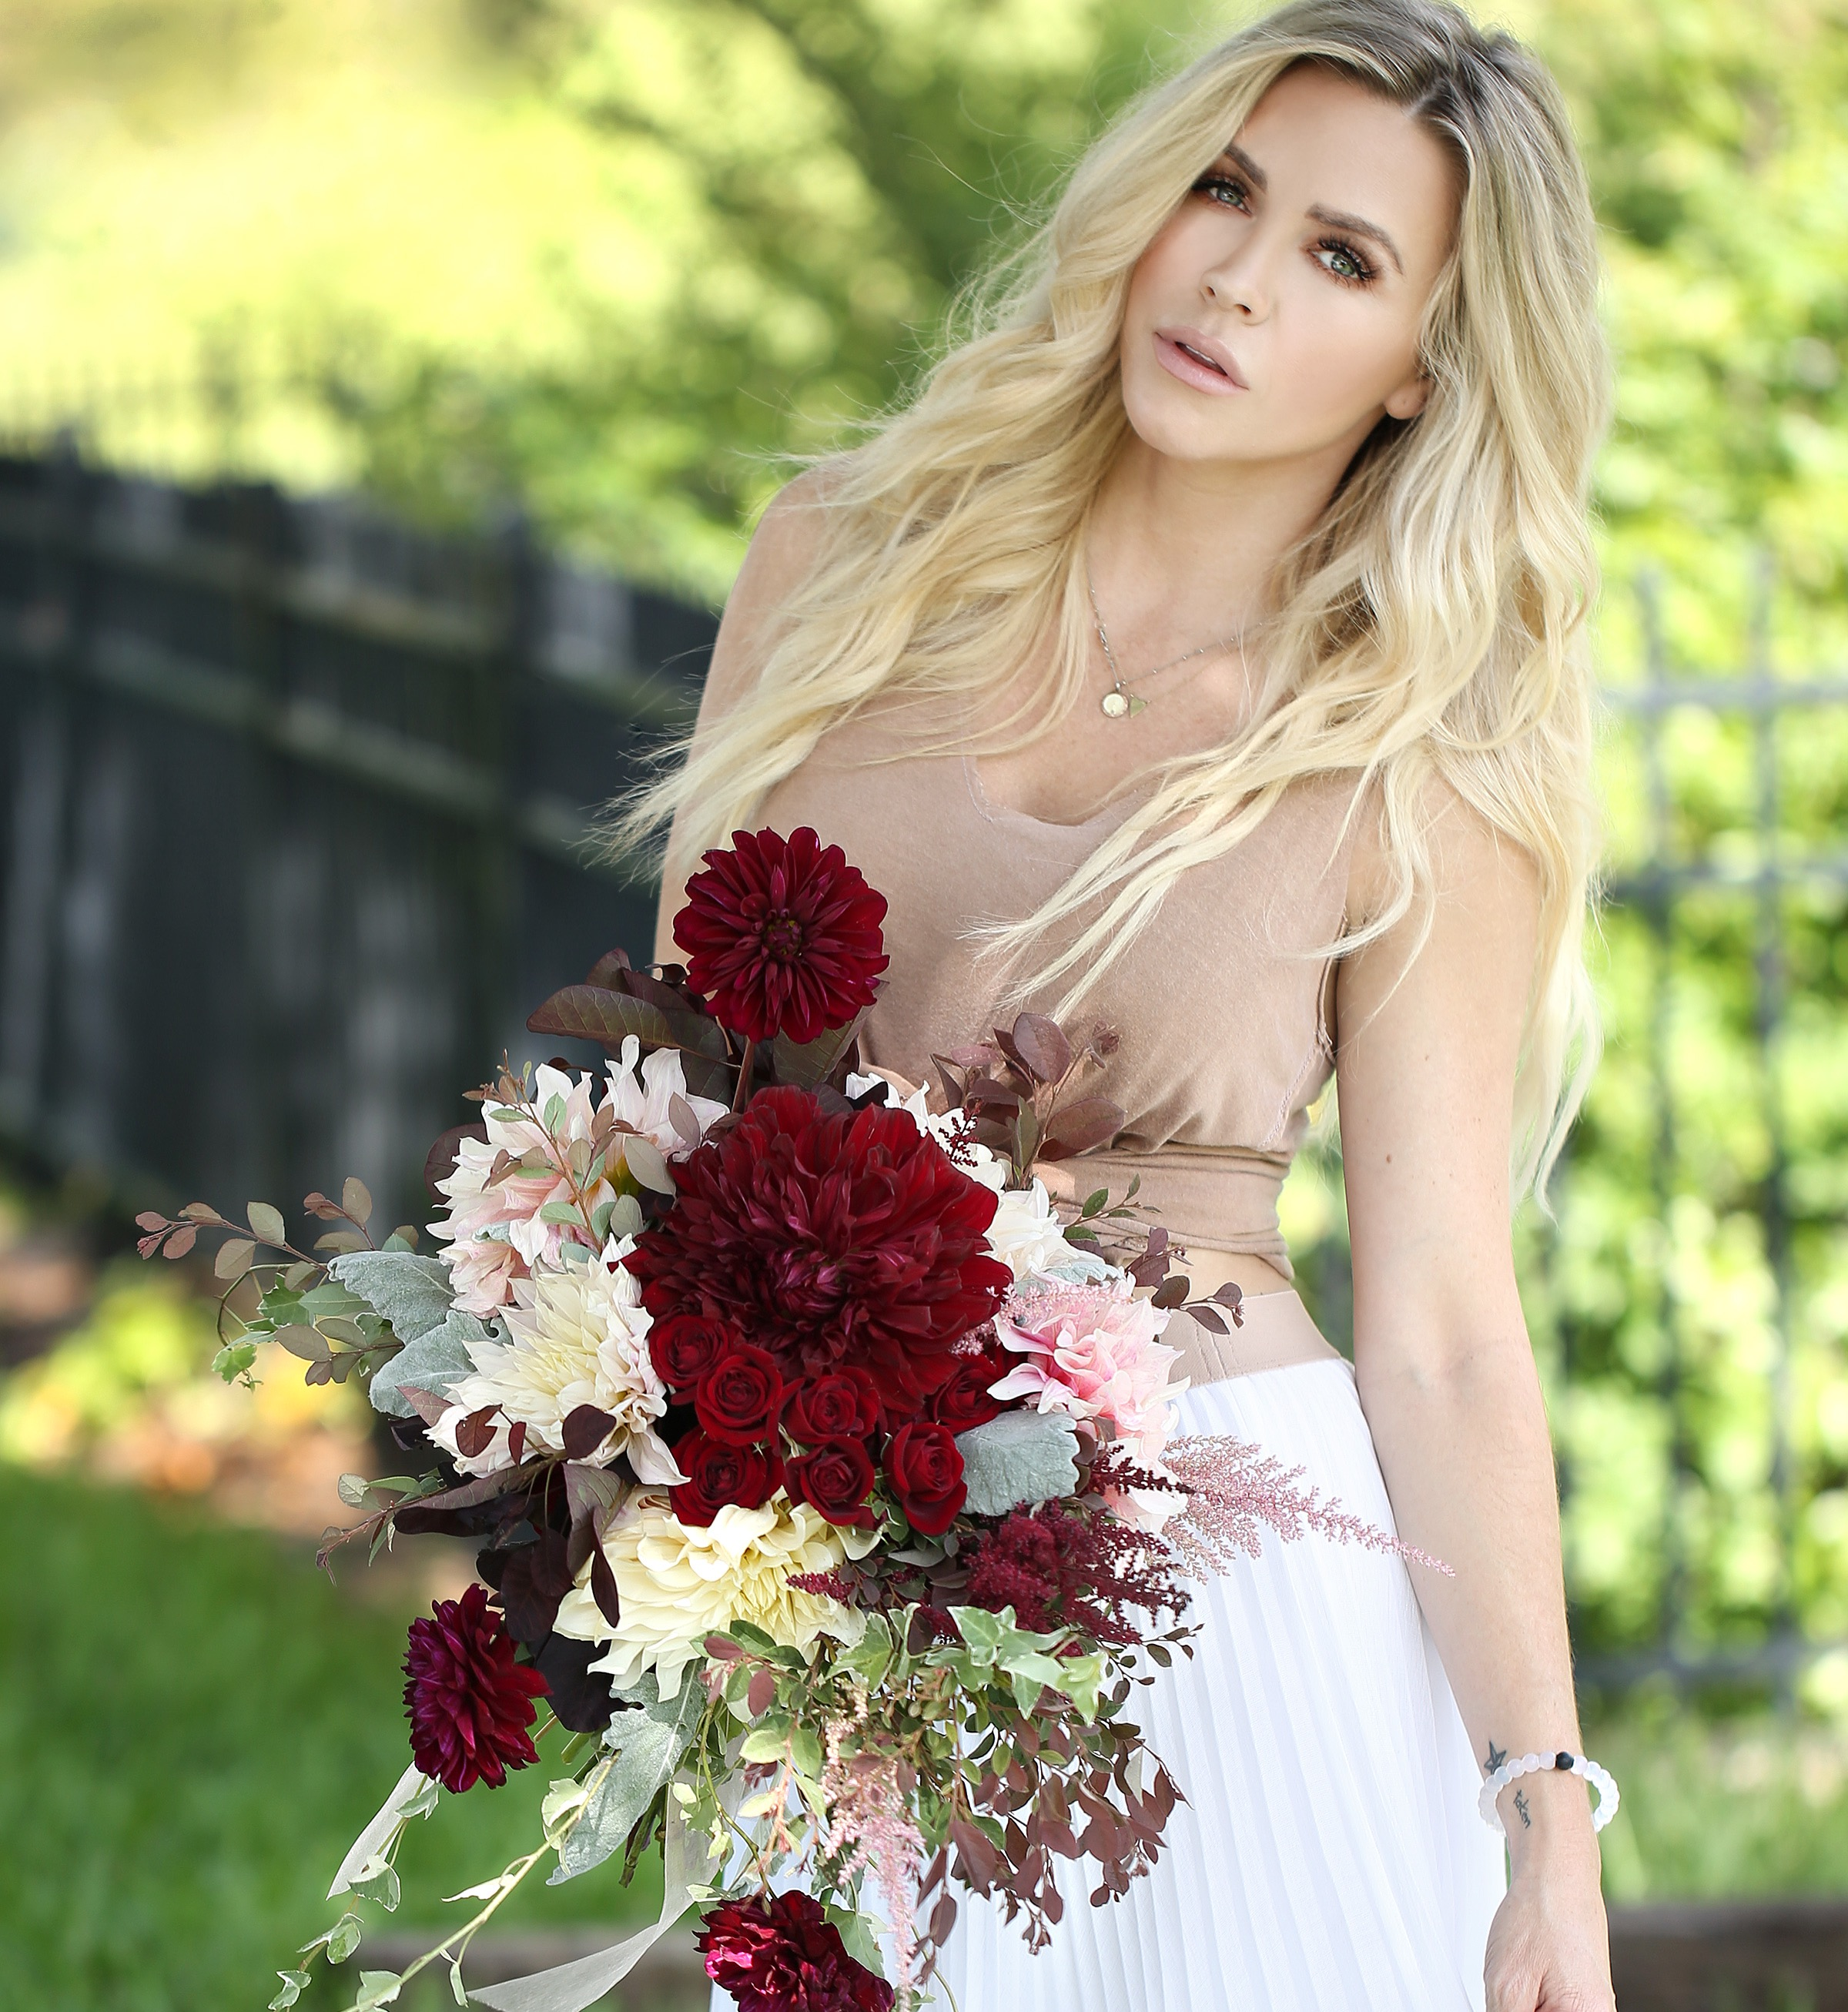 dahlias, spray roses, garden roses and greenery